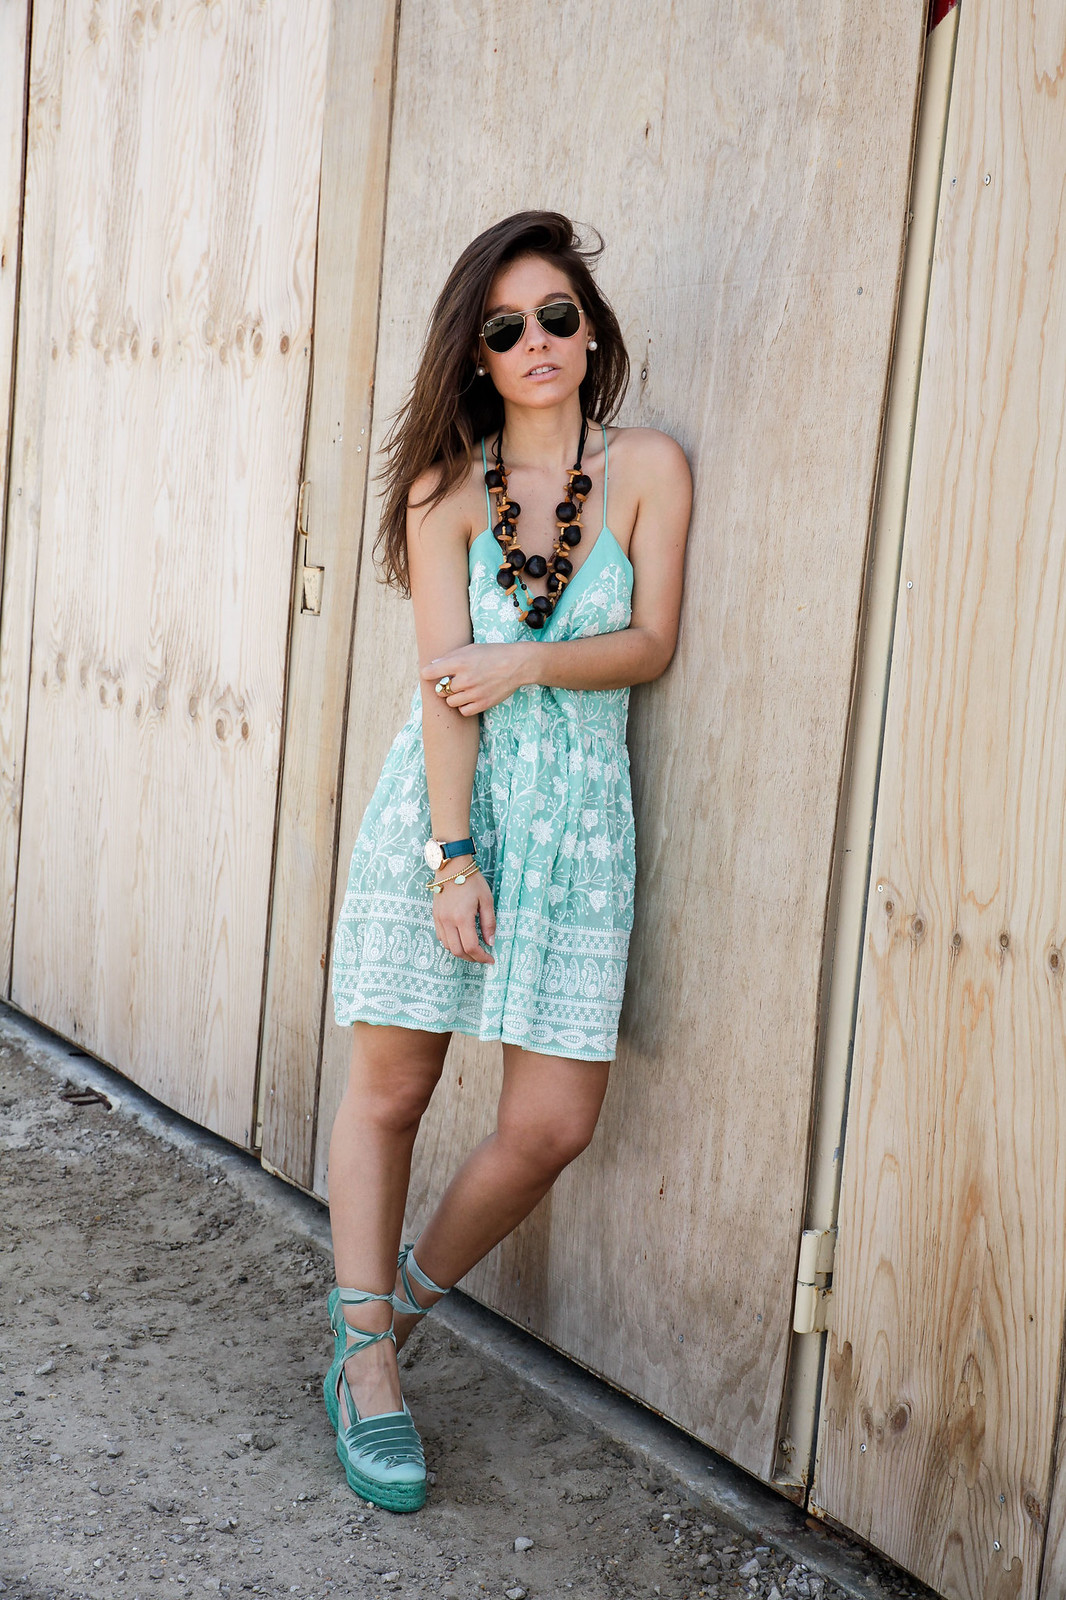 01_turquoise__dress_summer_outfit_miss_june_castañer_cuñas_aguamarina_theguestgirl_influencer_barcelona_laura_santolaria